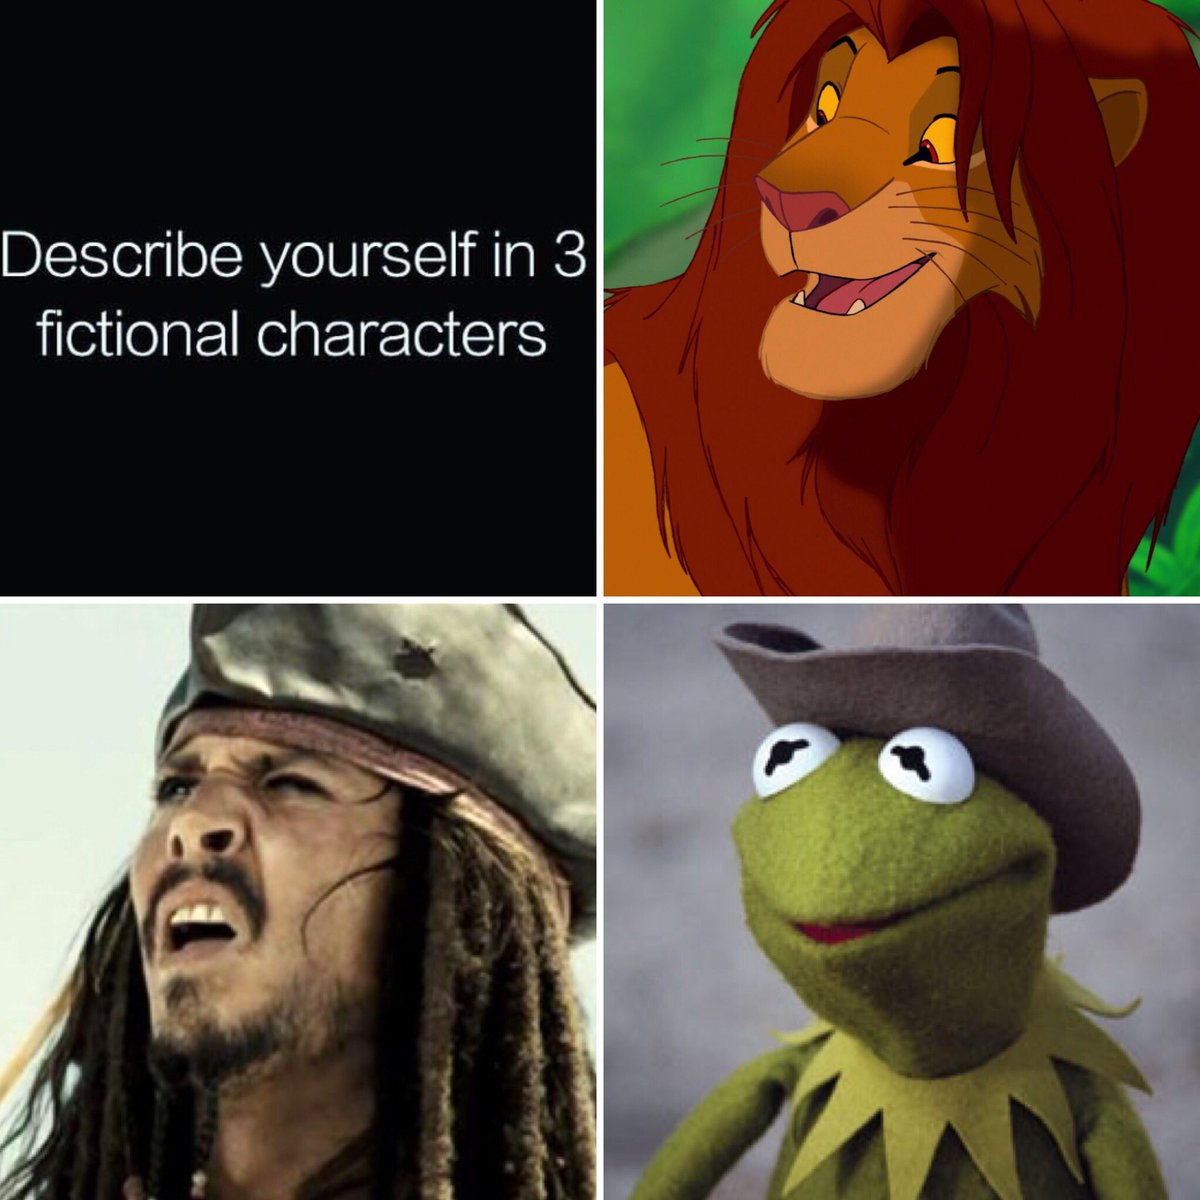 describe_yourself_in_3_characters describe yourself in 3 fictional characters know your meme